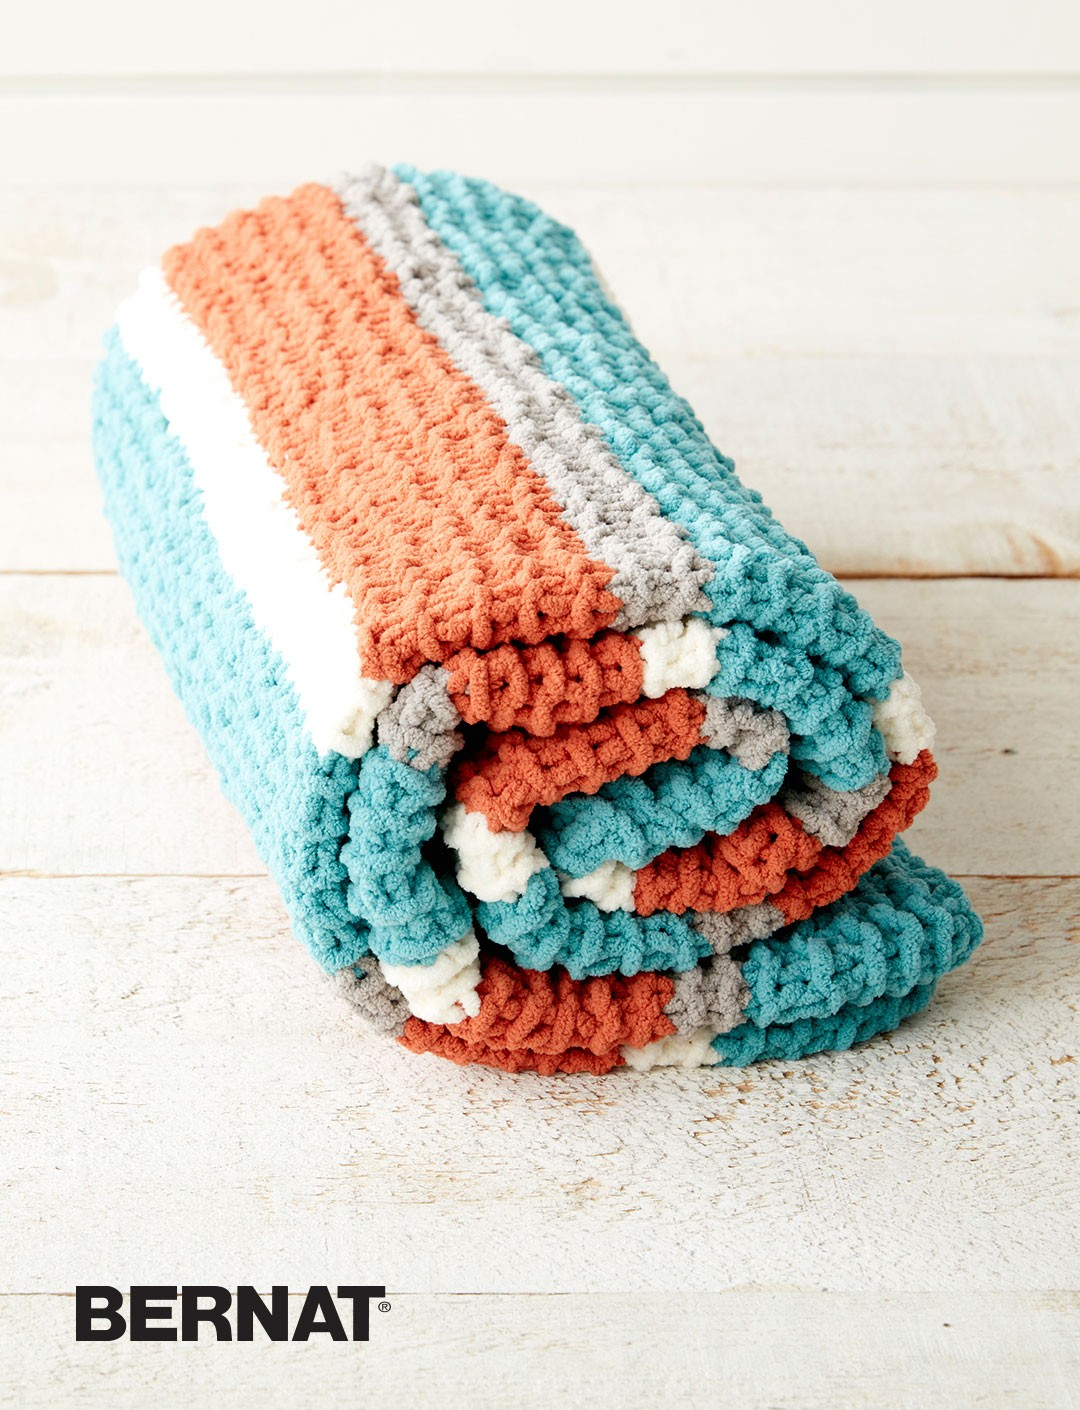 Bernat Baby Blanket Yarn Knitting Patterns : Bernat Get Fresh Throw, Knit Pattern Yarnspirations